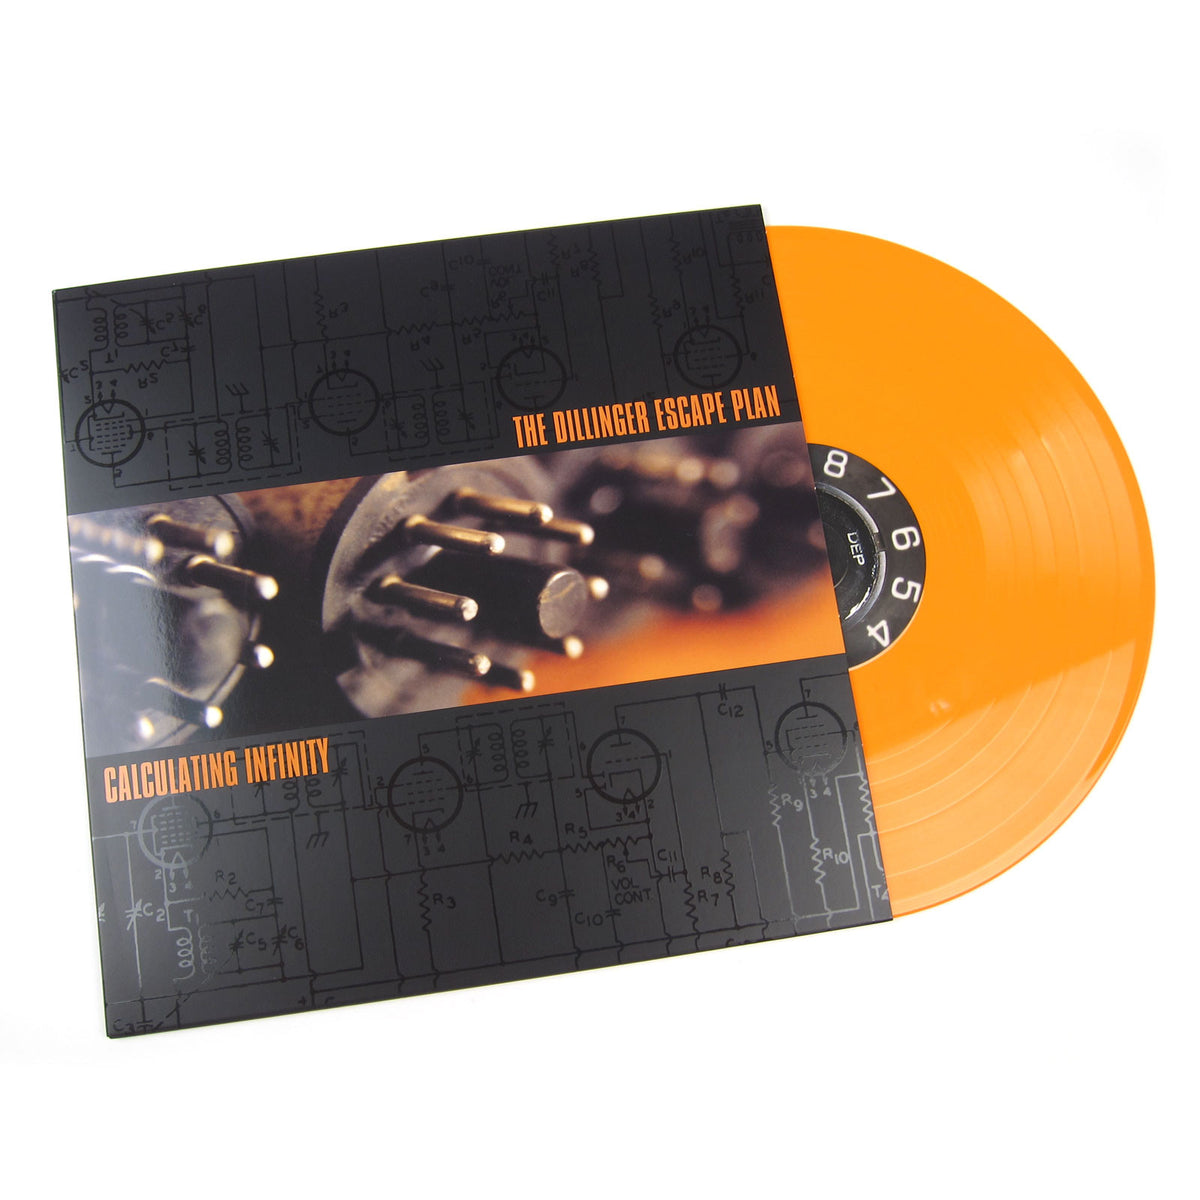 The Dillinger Escape Plan: Calculating Infinity (Colored Vinyl) Vinyl LP